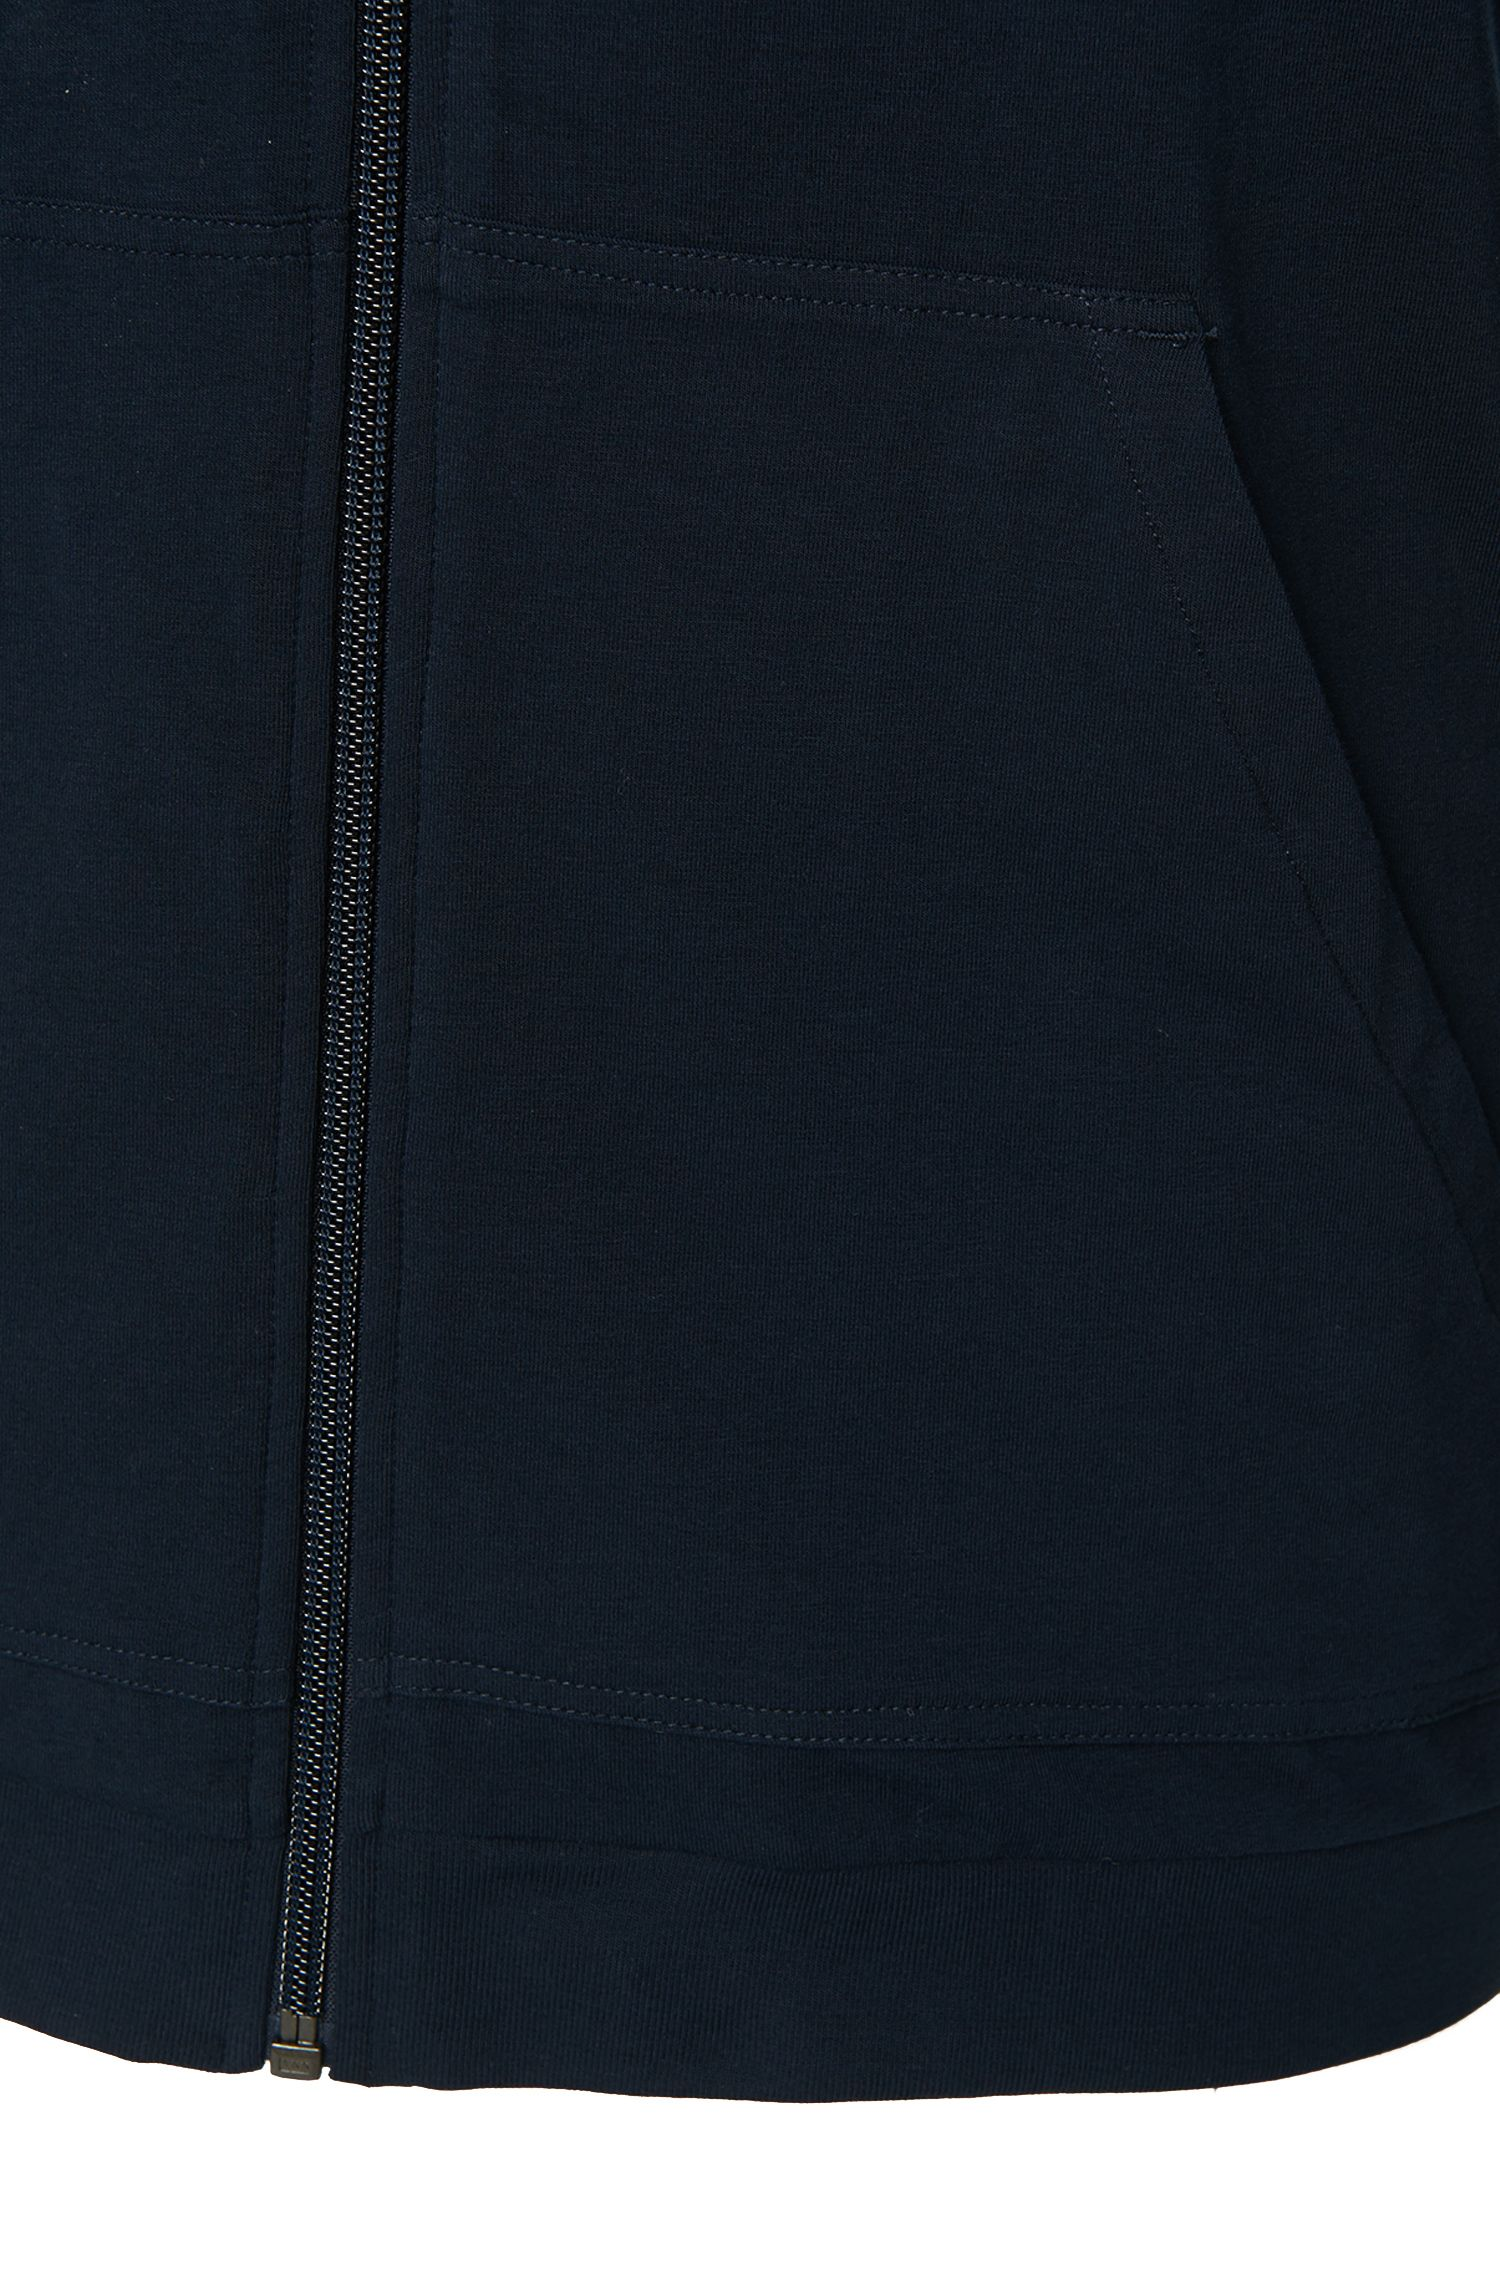 Sweatshirt-Jacke mit Kapuze aus Stretch-Baumwolle: 'Jacket Hooded'